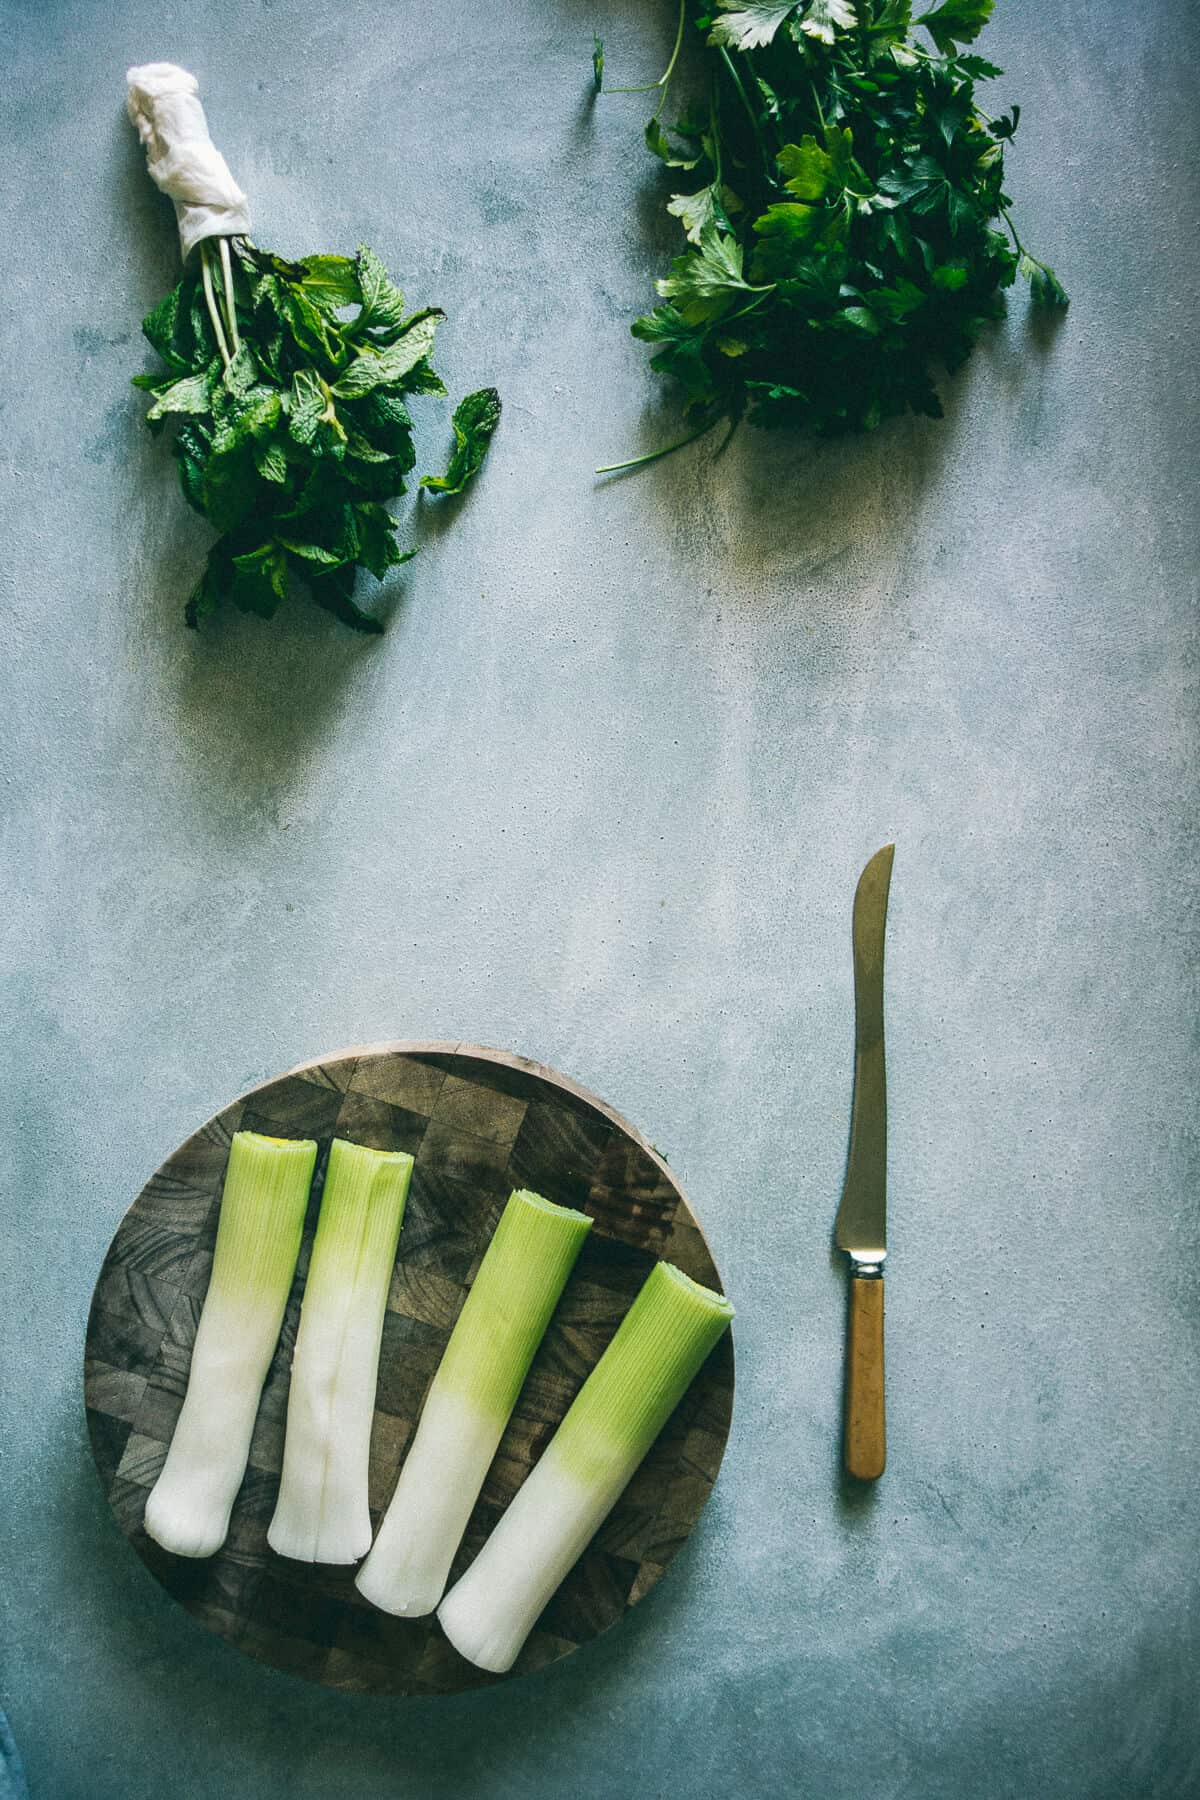 leeks and herbs on a chopping board